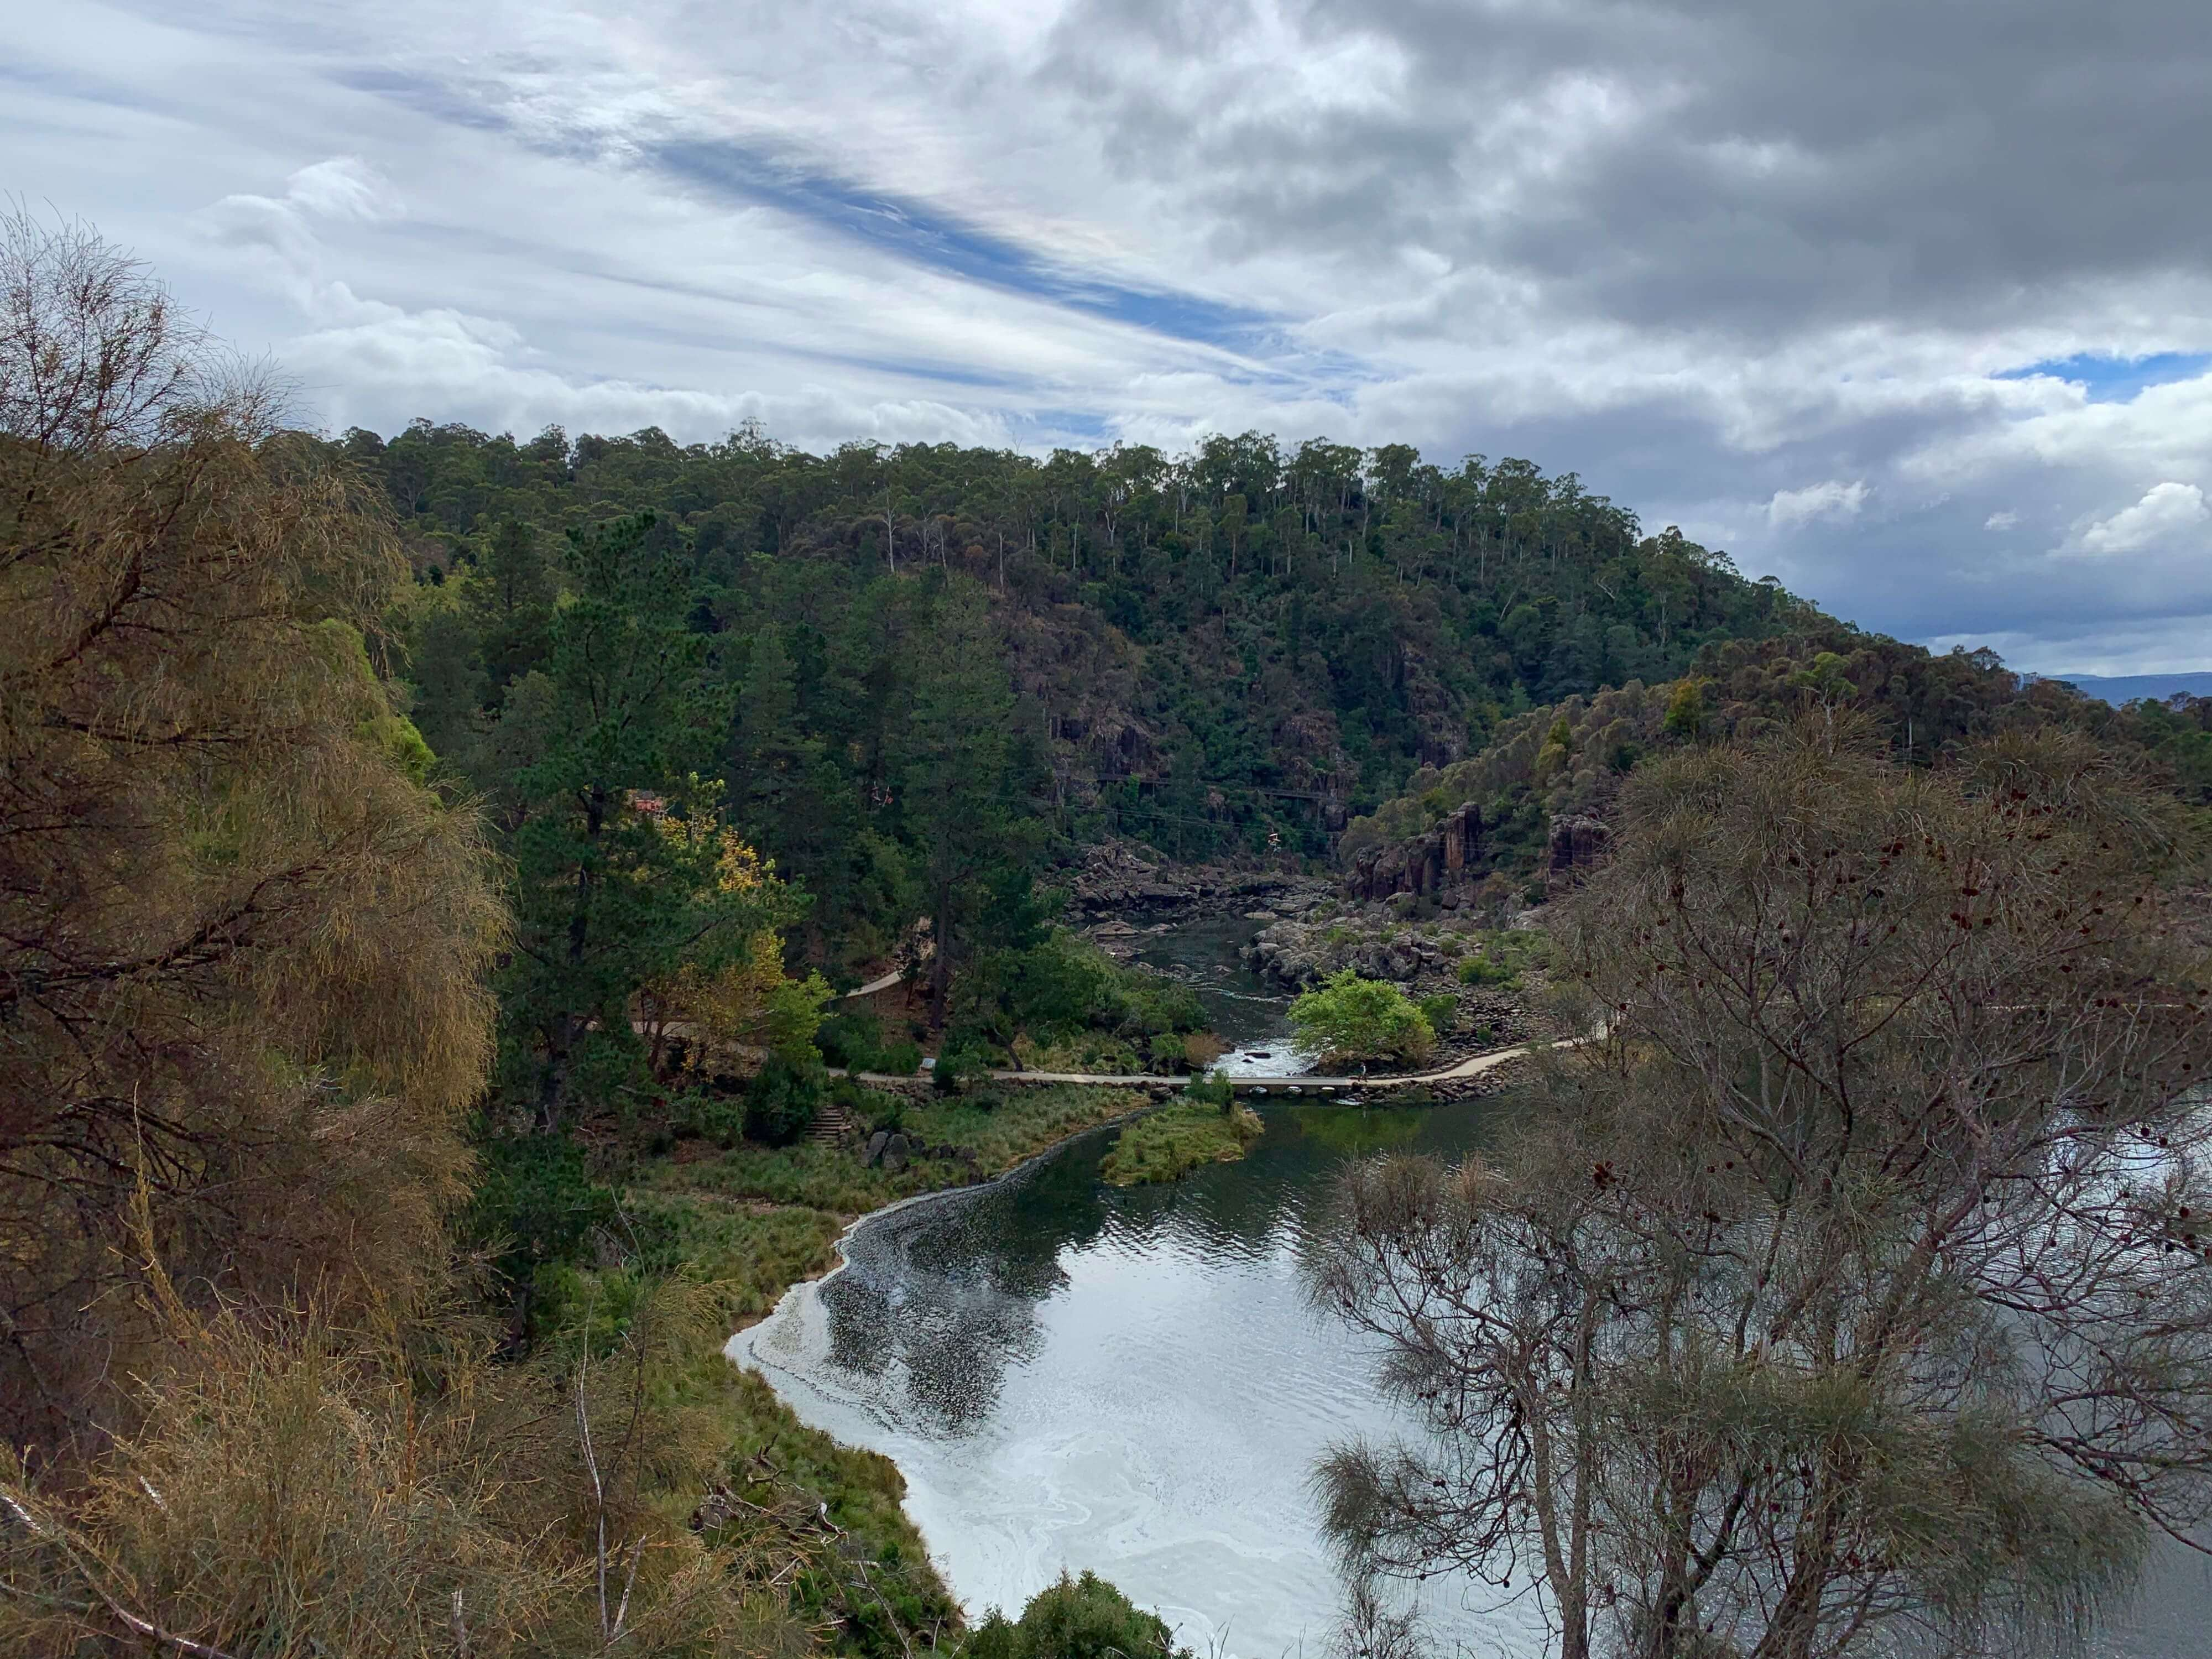 view of the South Esk River as seen from a walking trail in Cataract Gorge, Launceston, Tasmania